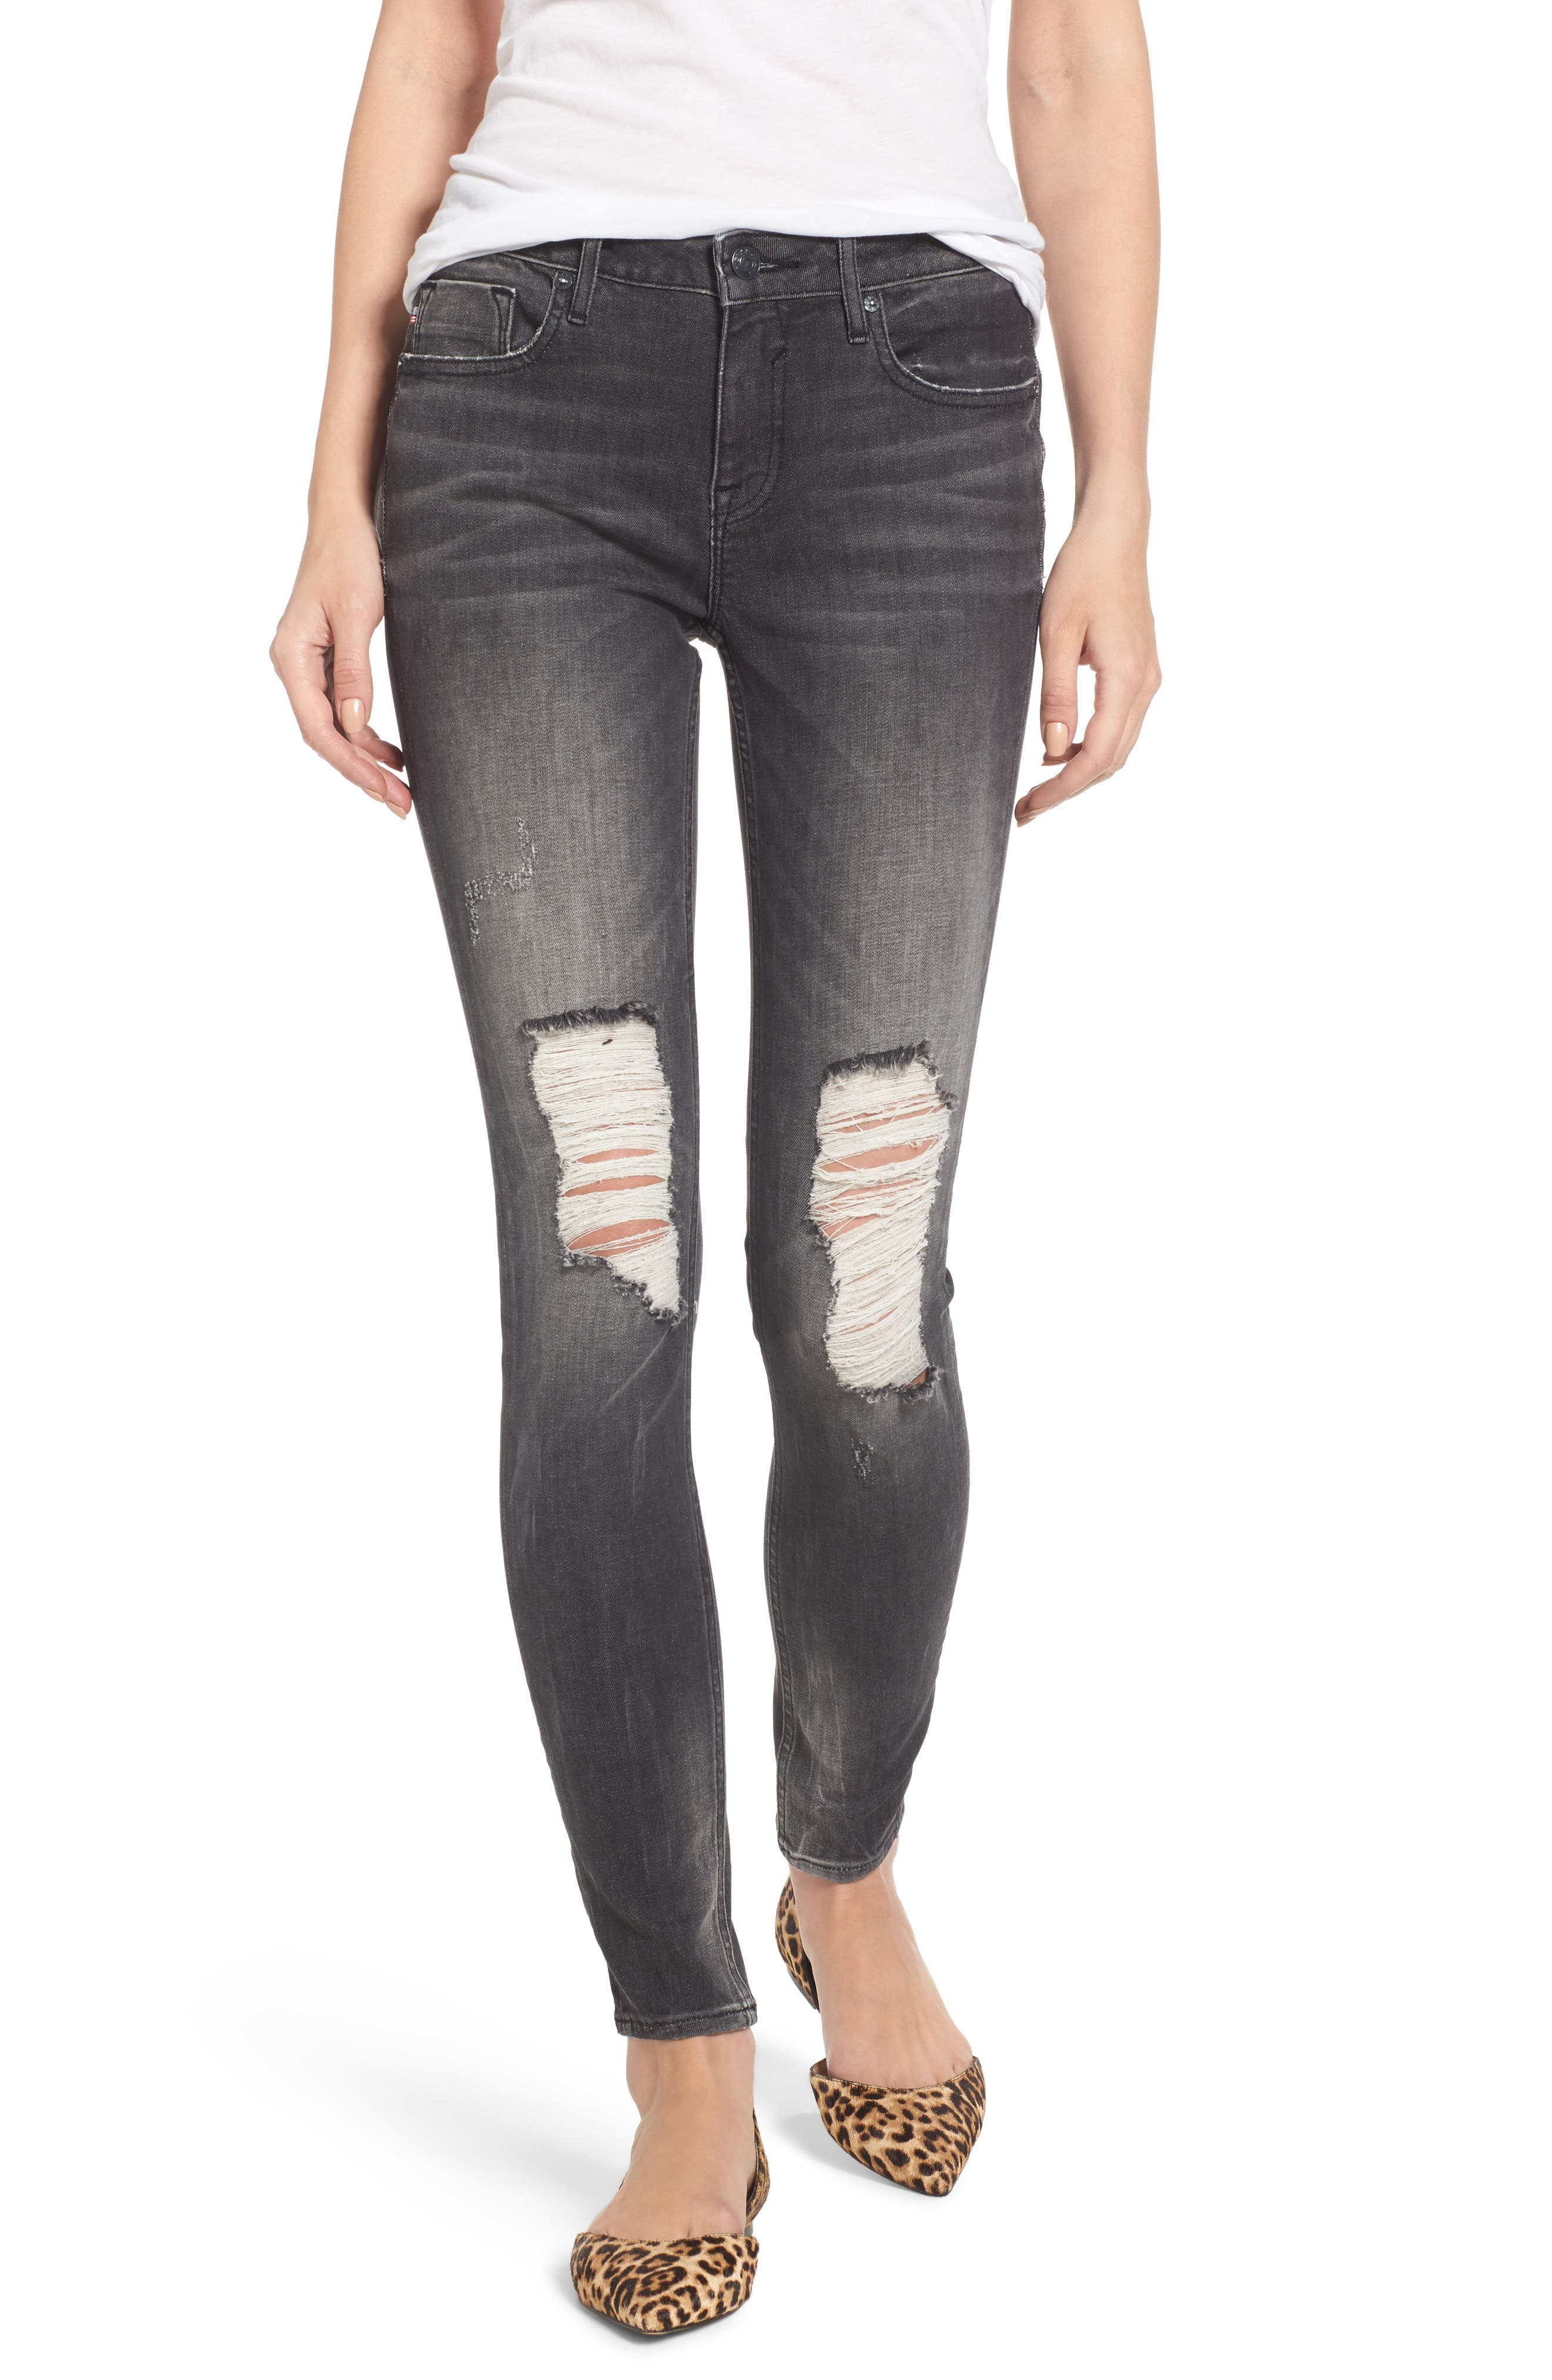 Jagger Ripped Skinny Jeans,                         Main,                         color, 020